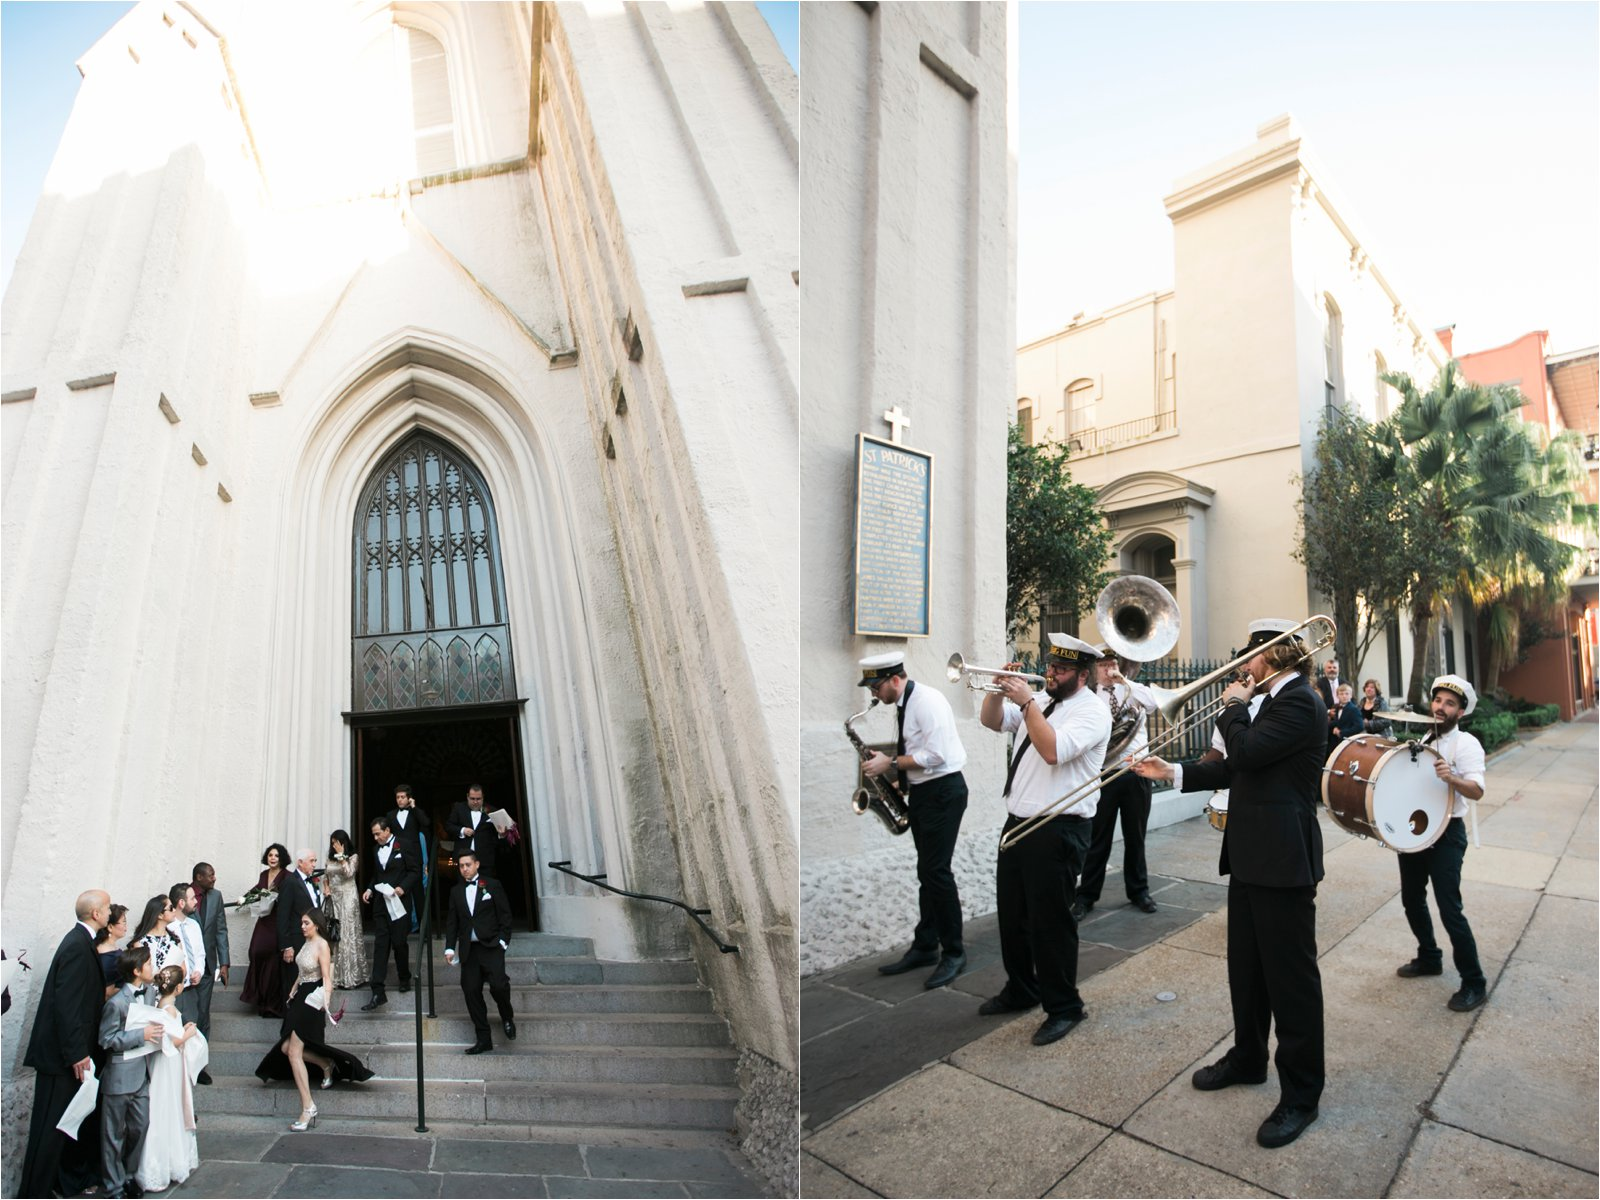 042_New Orleans wedding photographer.jpg